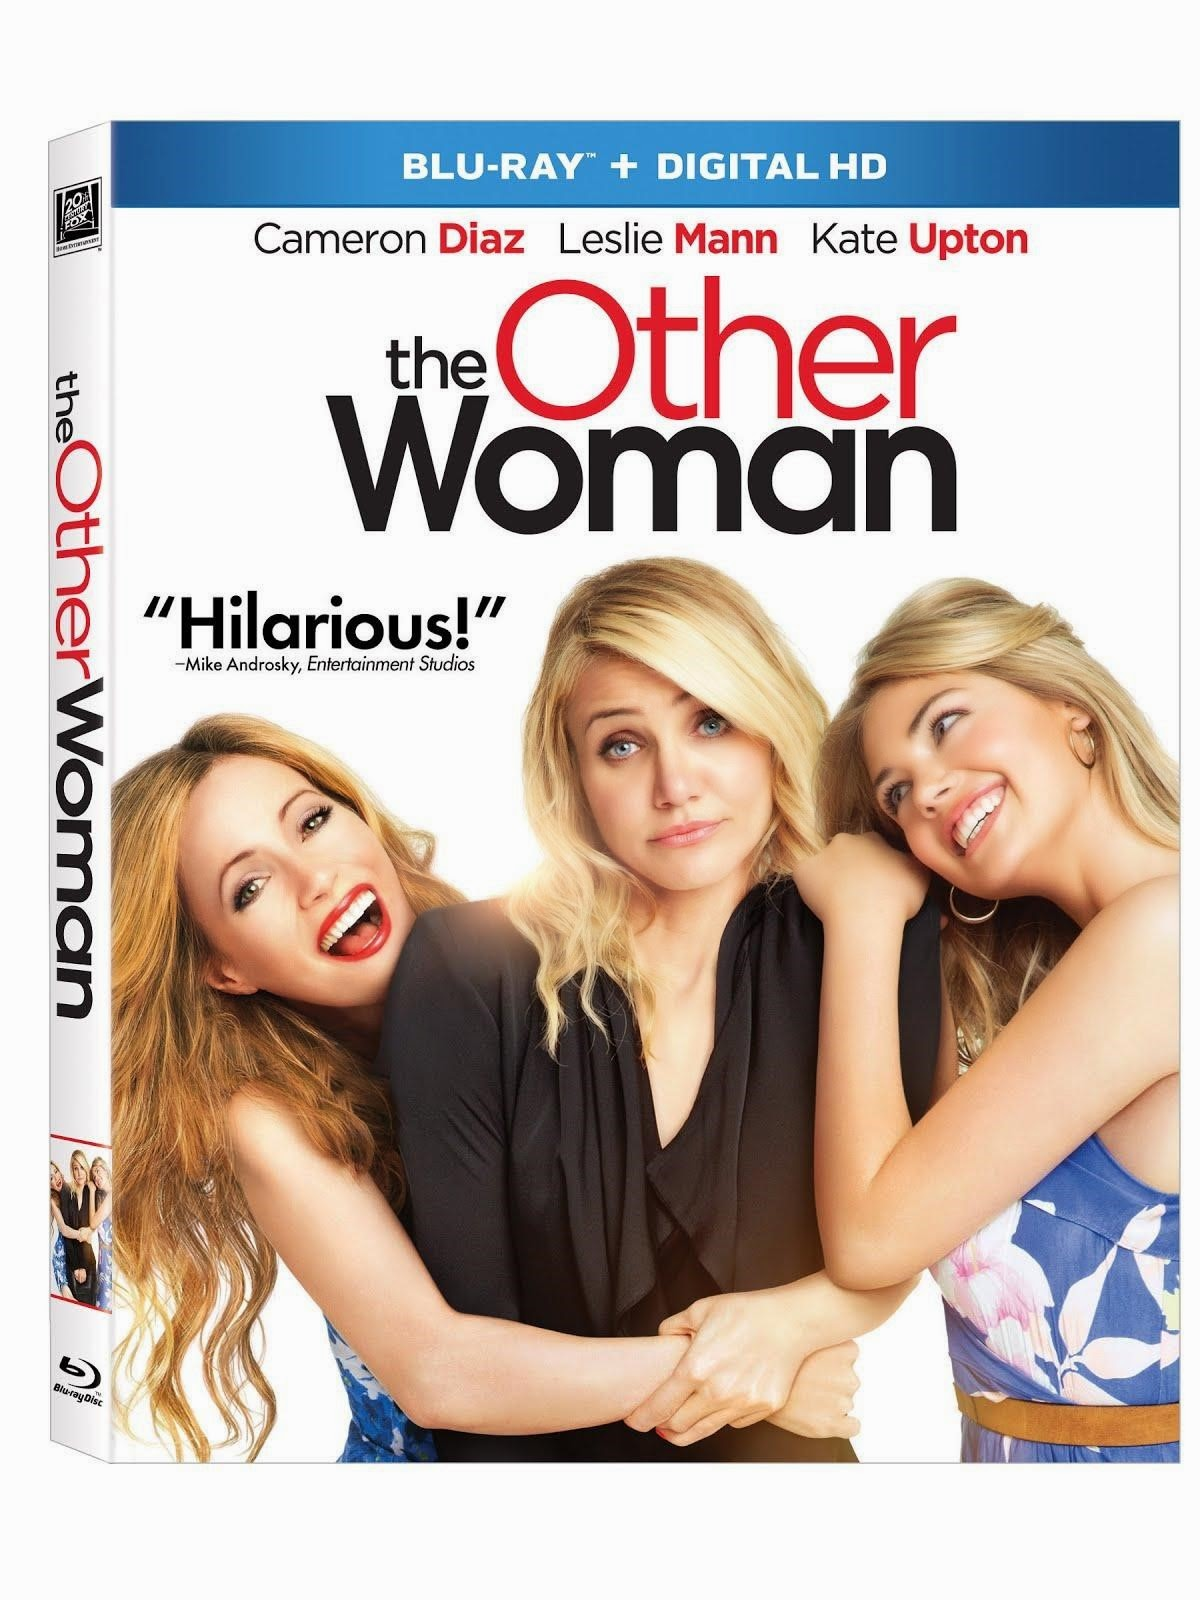 The other woman, cameron diaz, leslie mann, kate upton